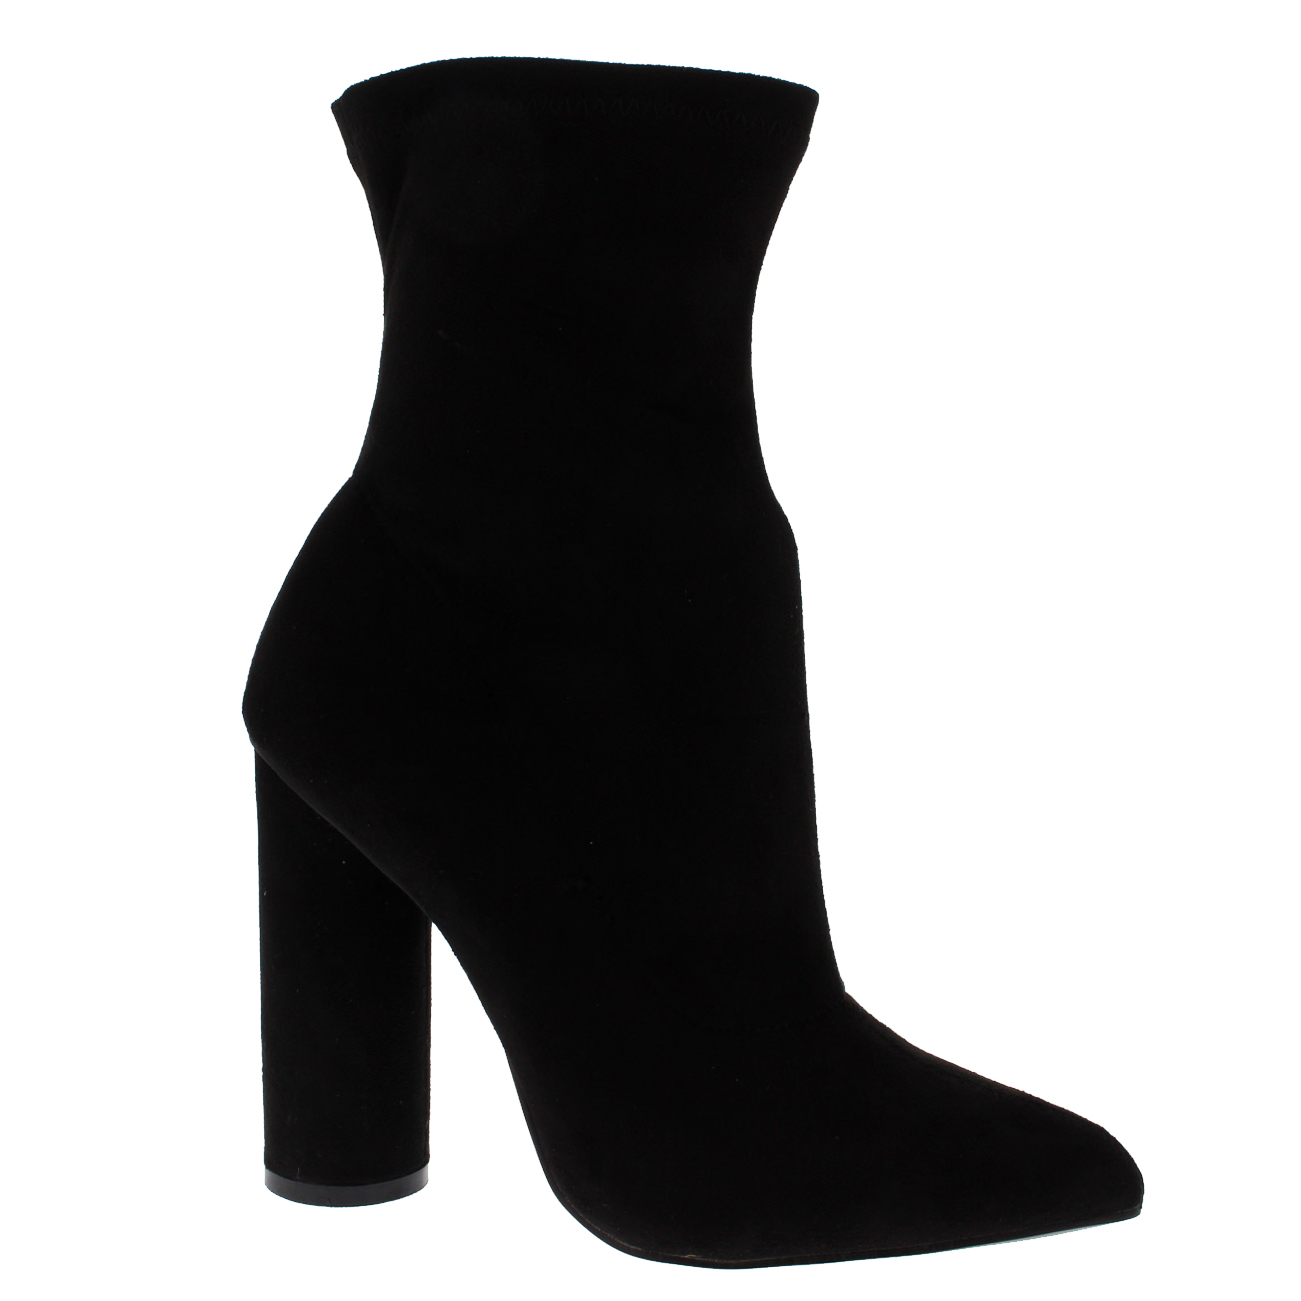 162b7a7fe36 Details about Womens Sock Fit Pointed Toe Fashion Chic Dress Block Heel  Ankle Boots UK 3-10